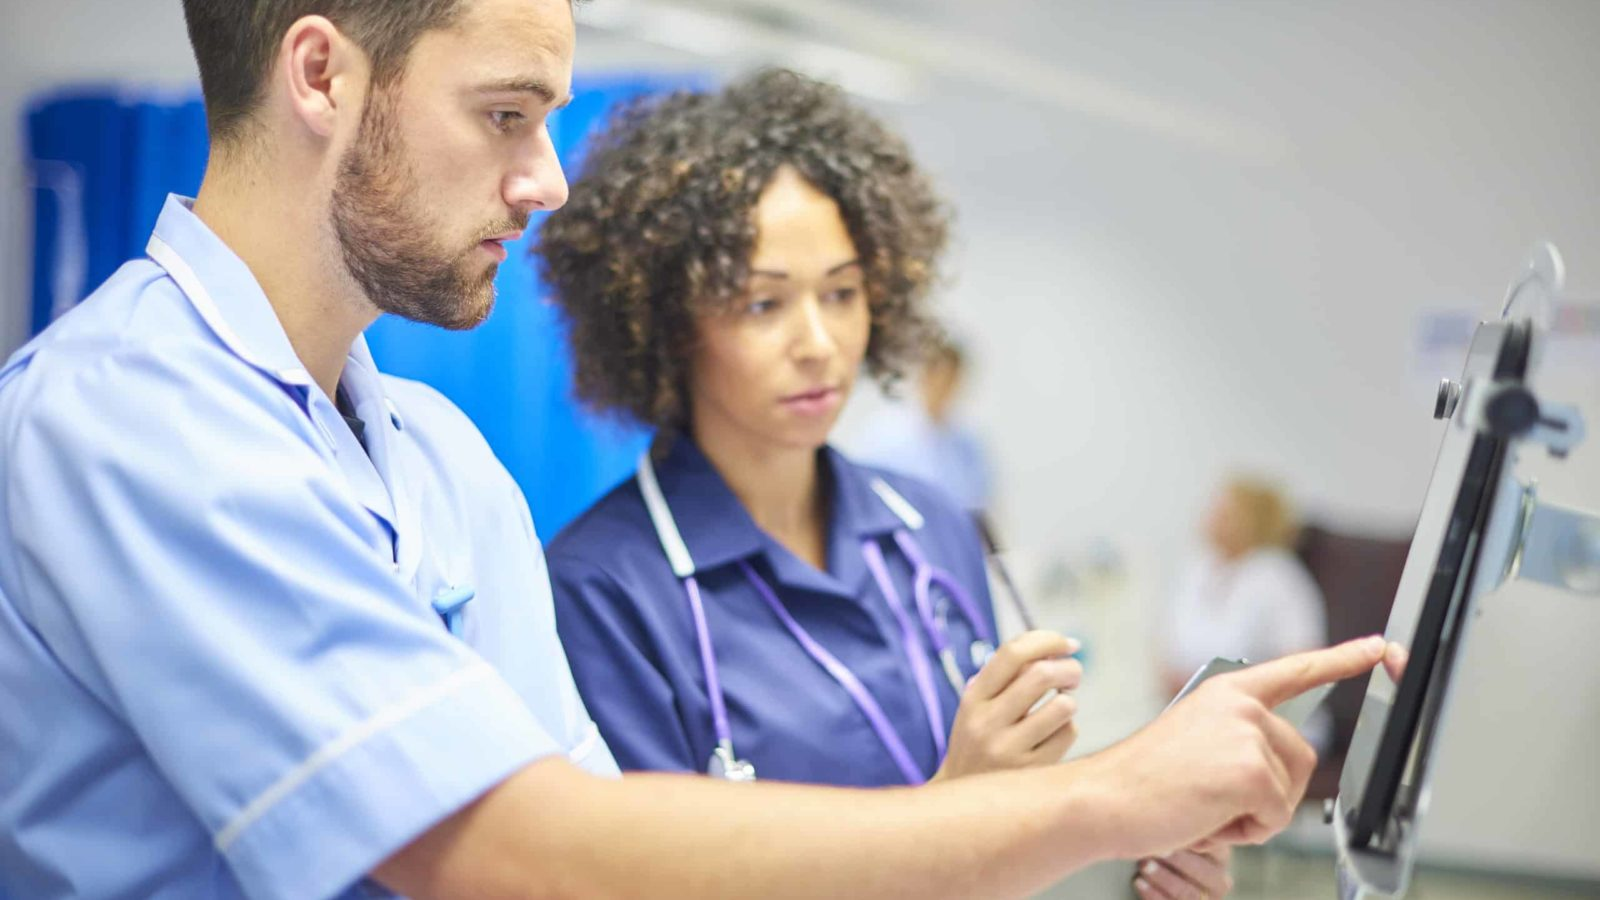 Financial advice discount for NHS workers